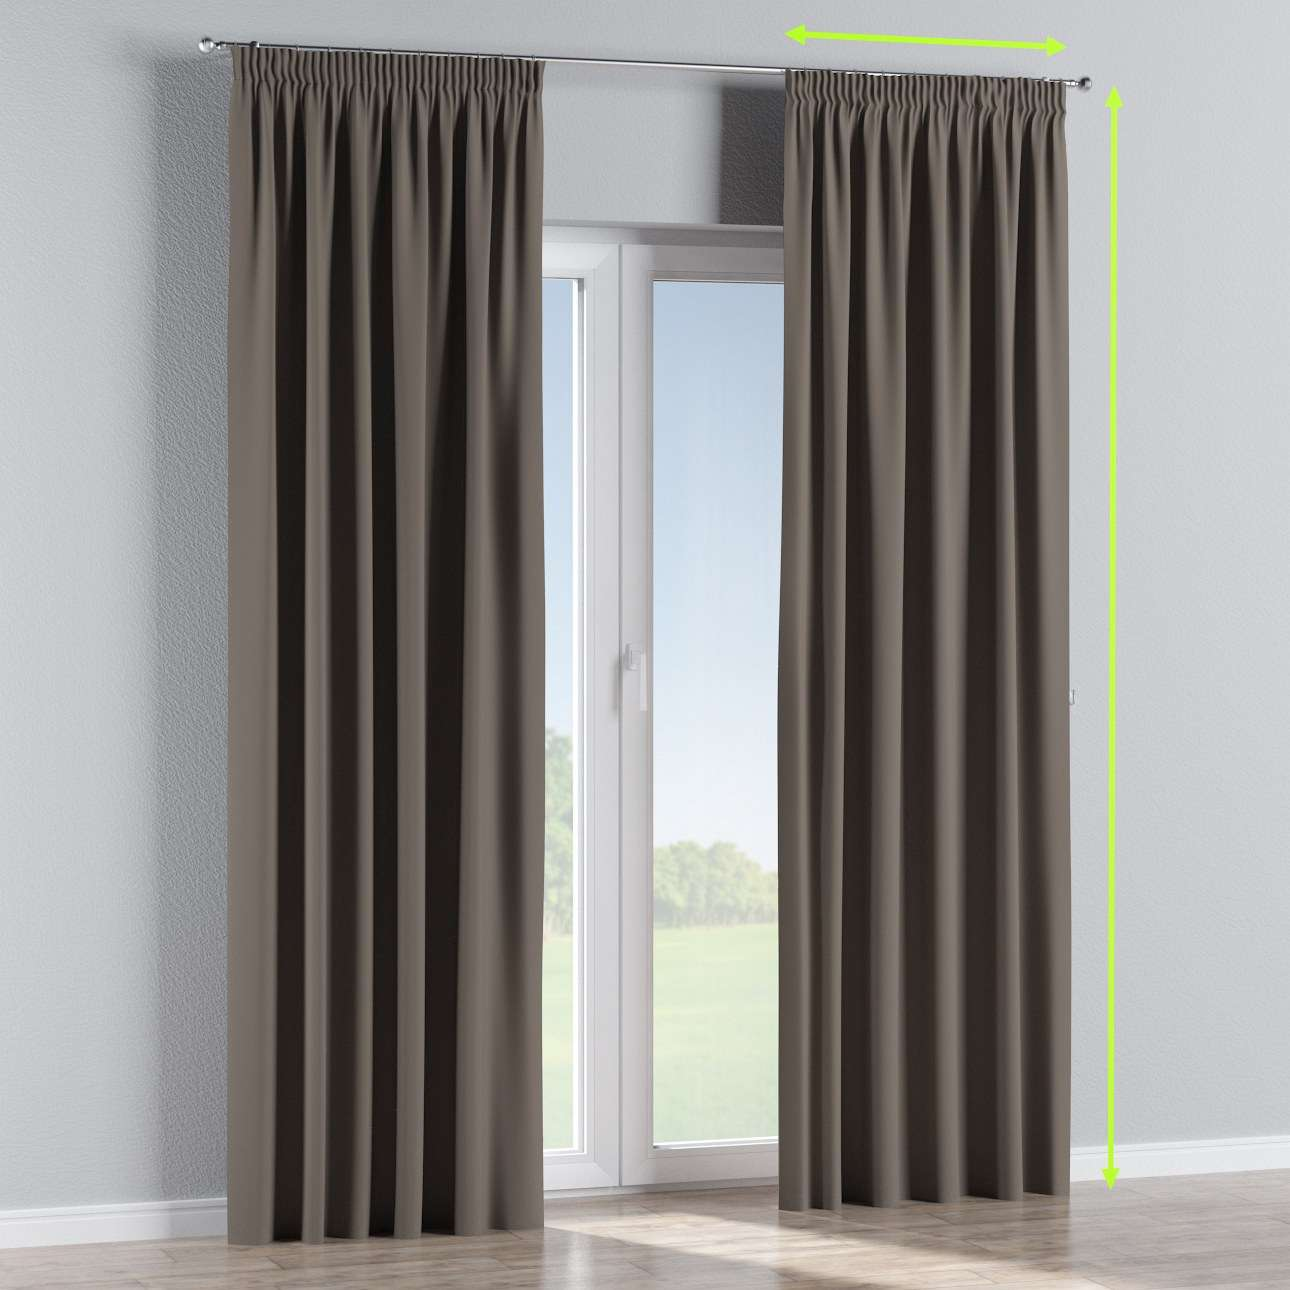 Pencil pleat curtain in collection Blackout, fabric: 269-80